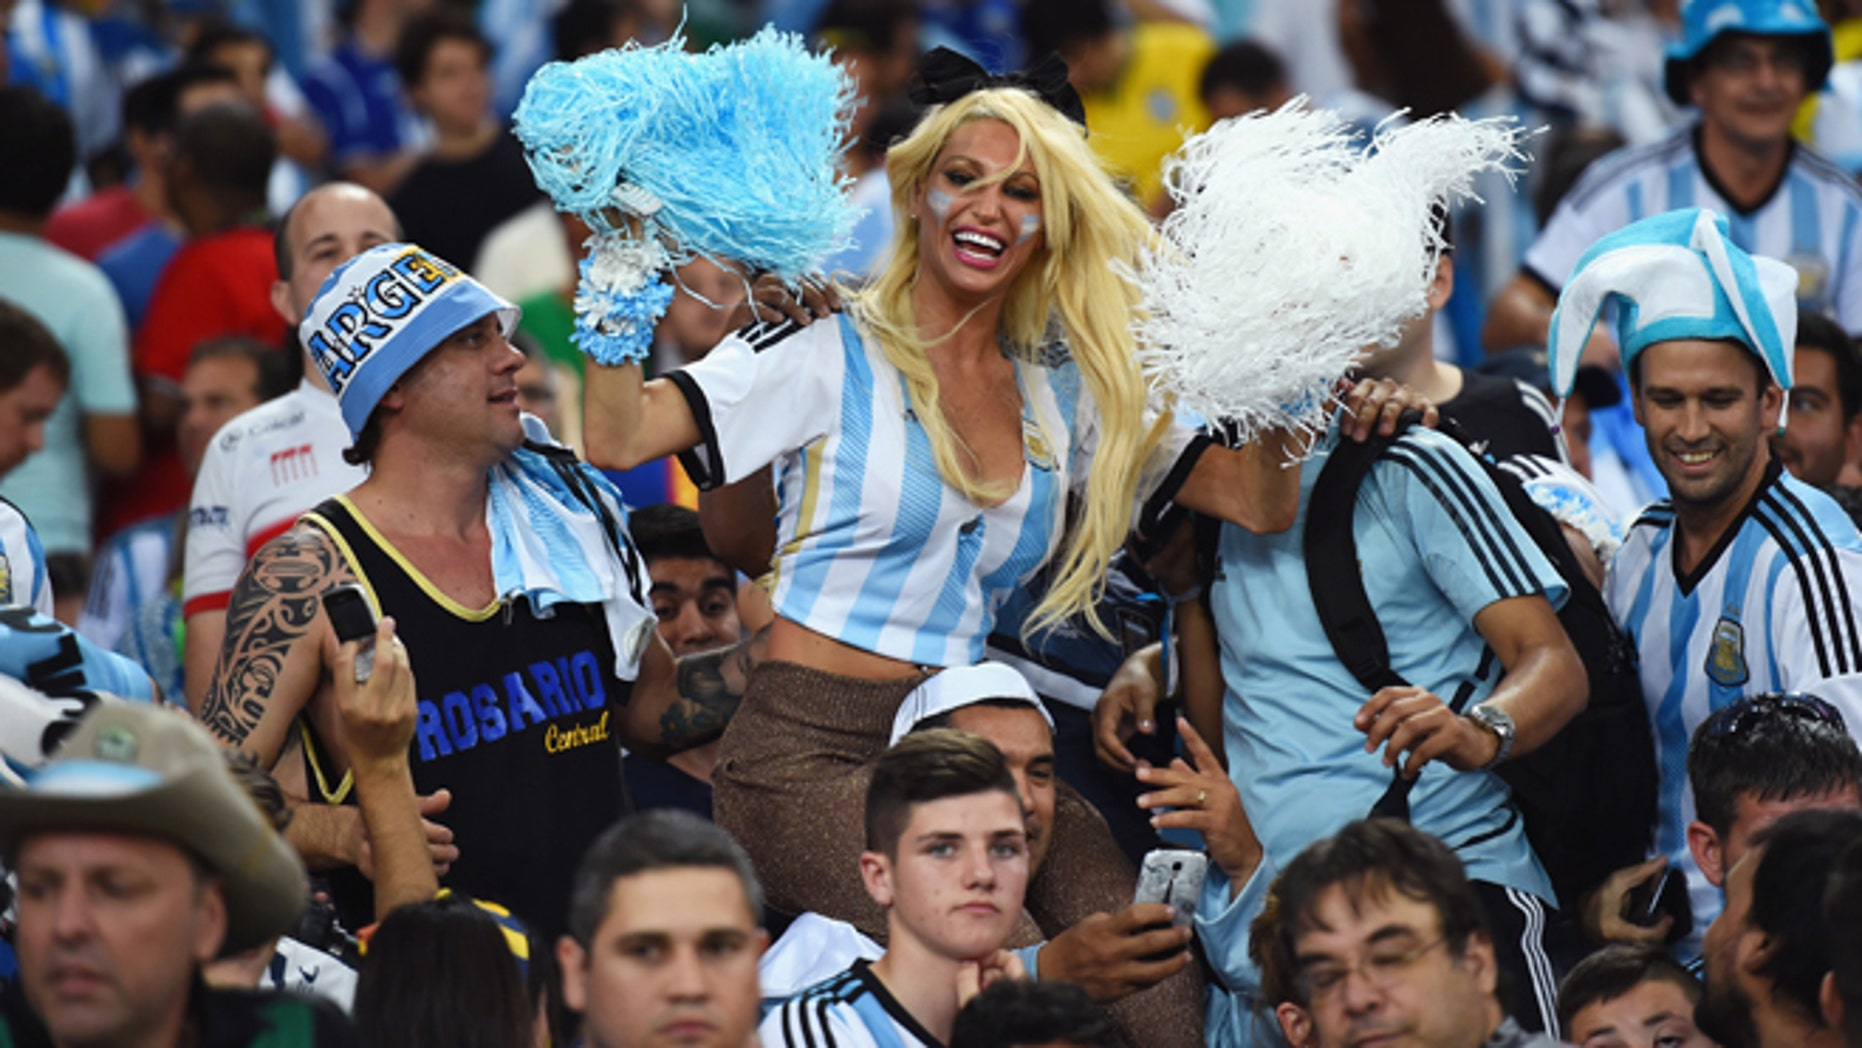 RIO DE JANEIRO, BRAZIL - JUNE 15:  An Argentina fan cheers in the crowd prior to the 2014 FIFA World Cup Brazil Group F match between Argentina and Bosnia-Herzegovina at Maracana on June 15, 2014 in Rio de Janeiro, Brazil.  (Photo by Matthias Hangst/Getty Images)